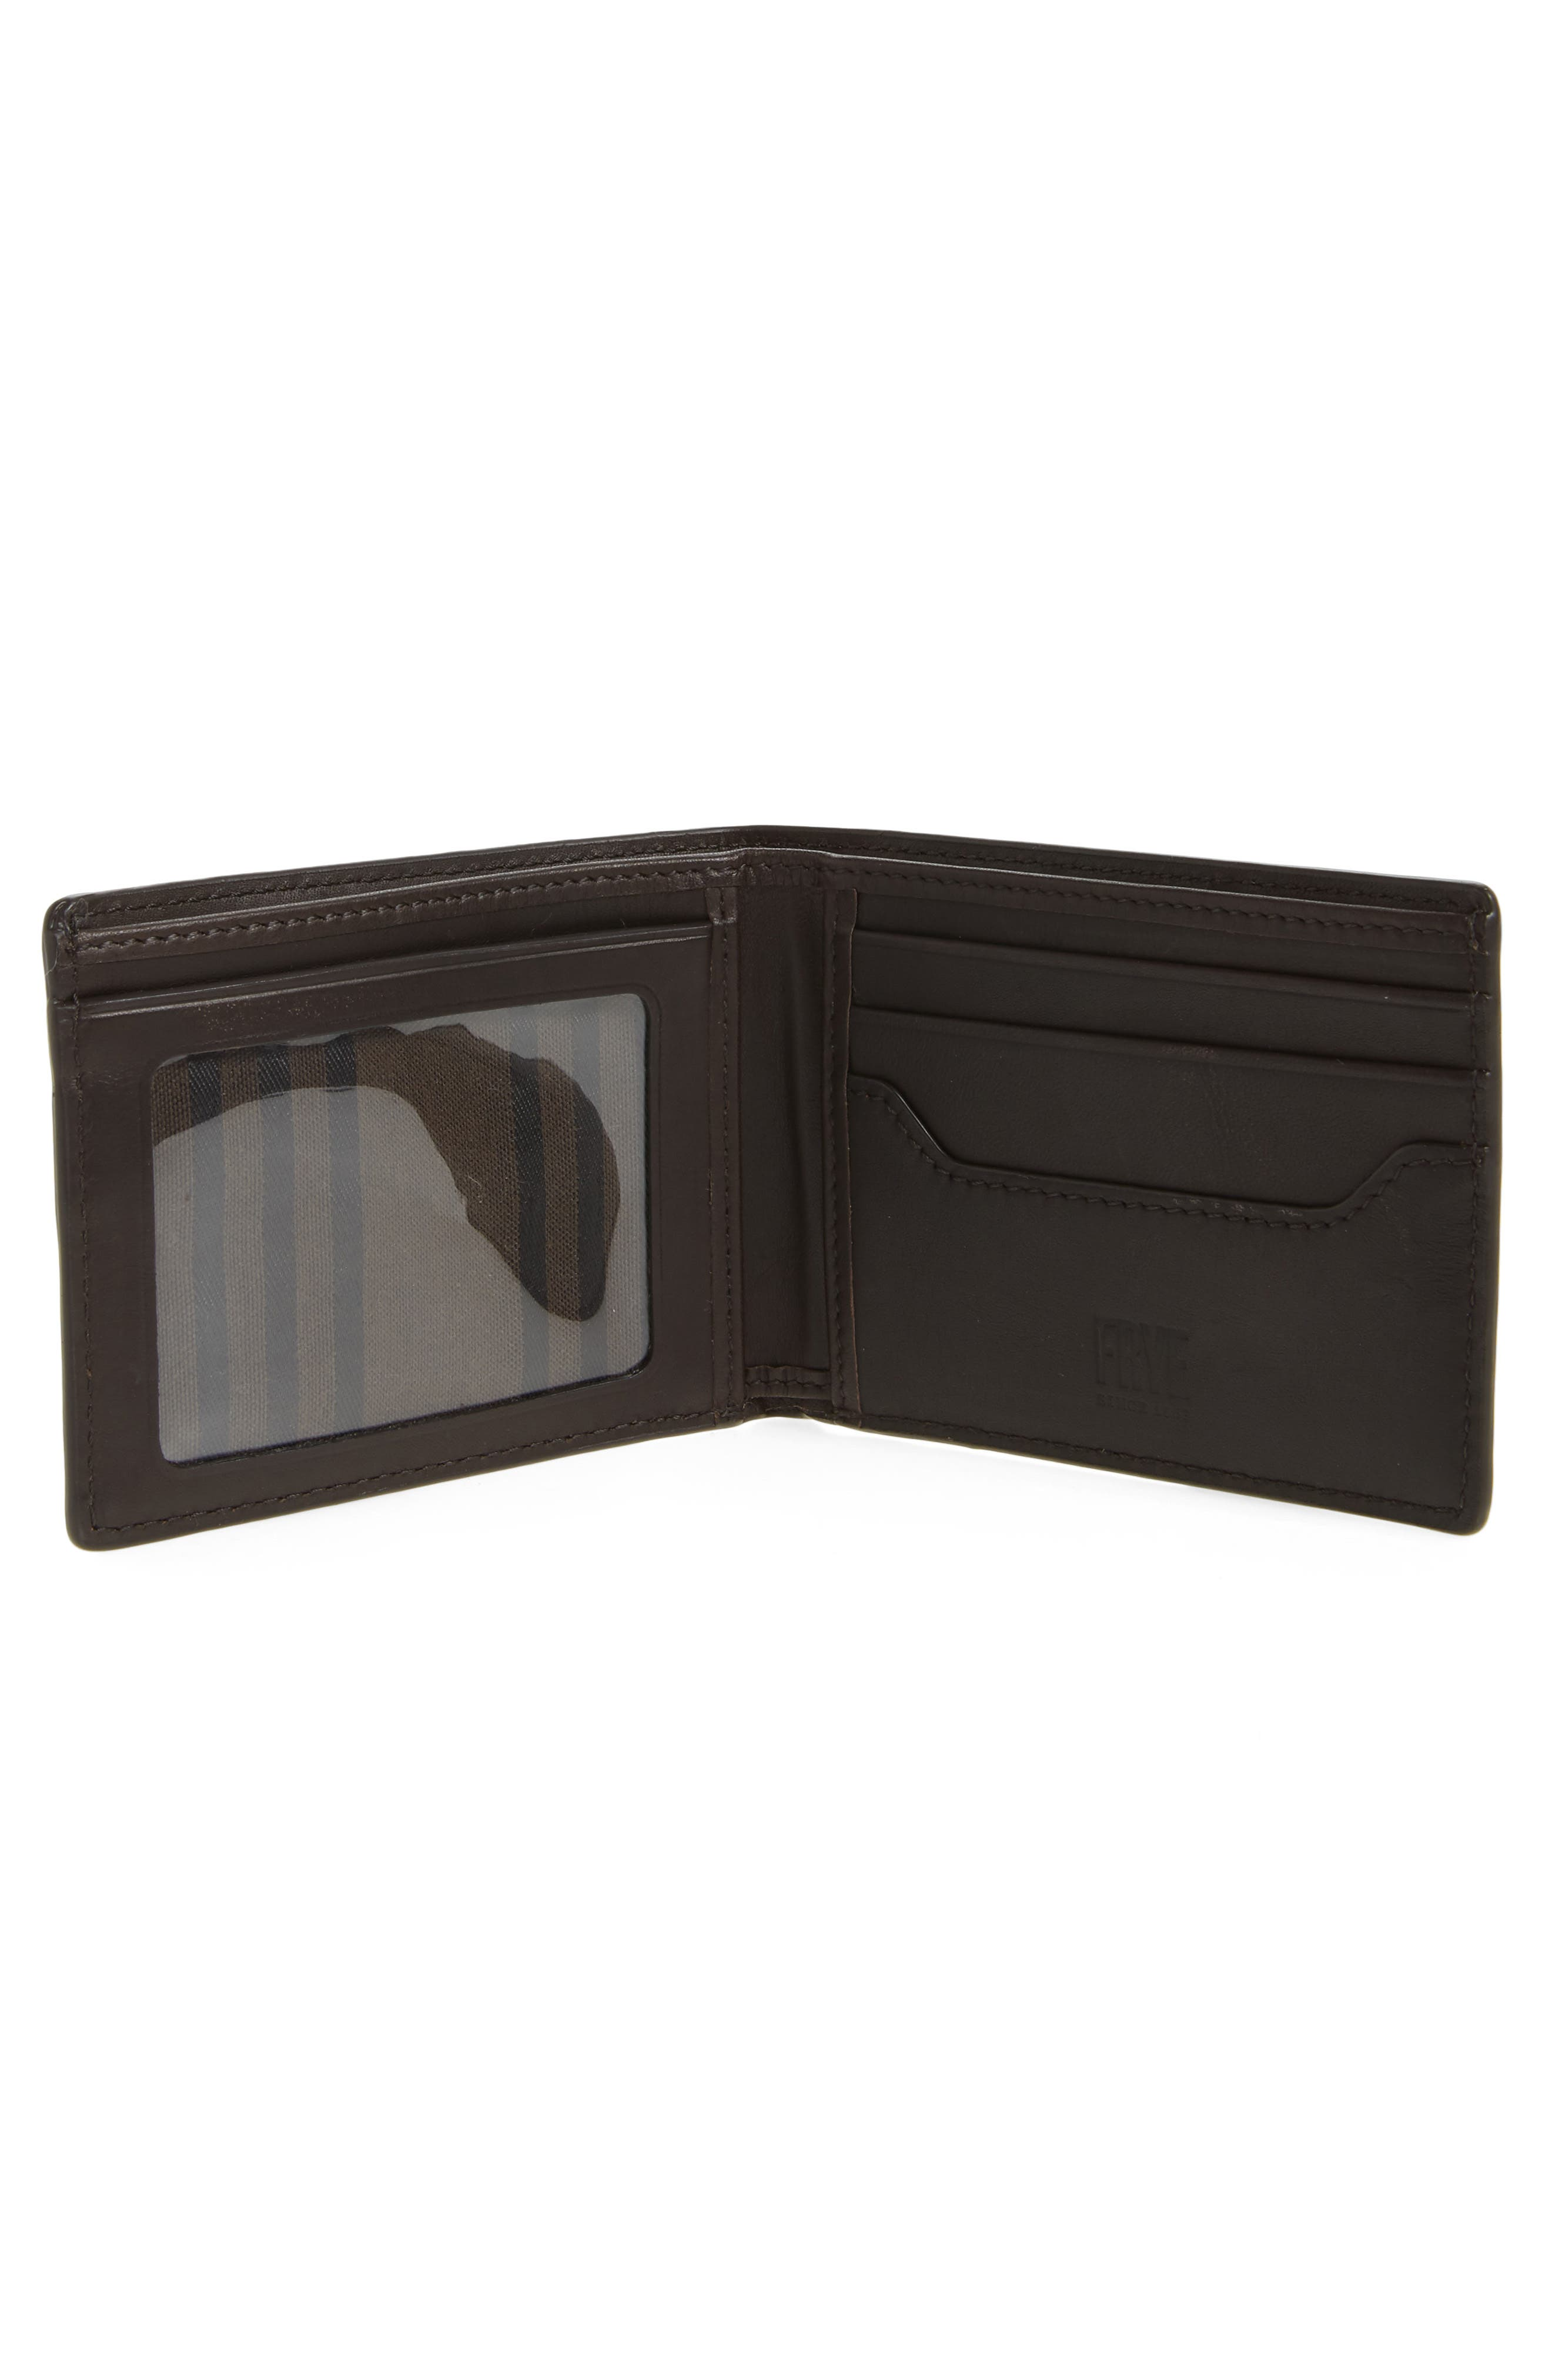 Logan Leather Wallet,                             Alternate thumbnail 2, color,                             SLATE